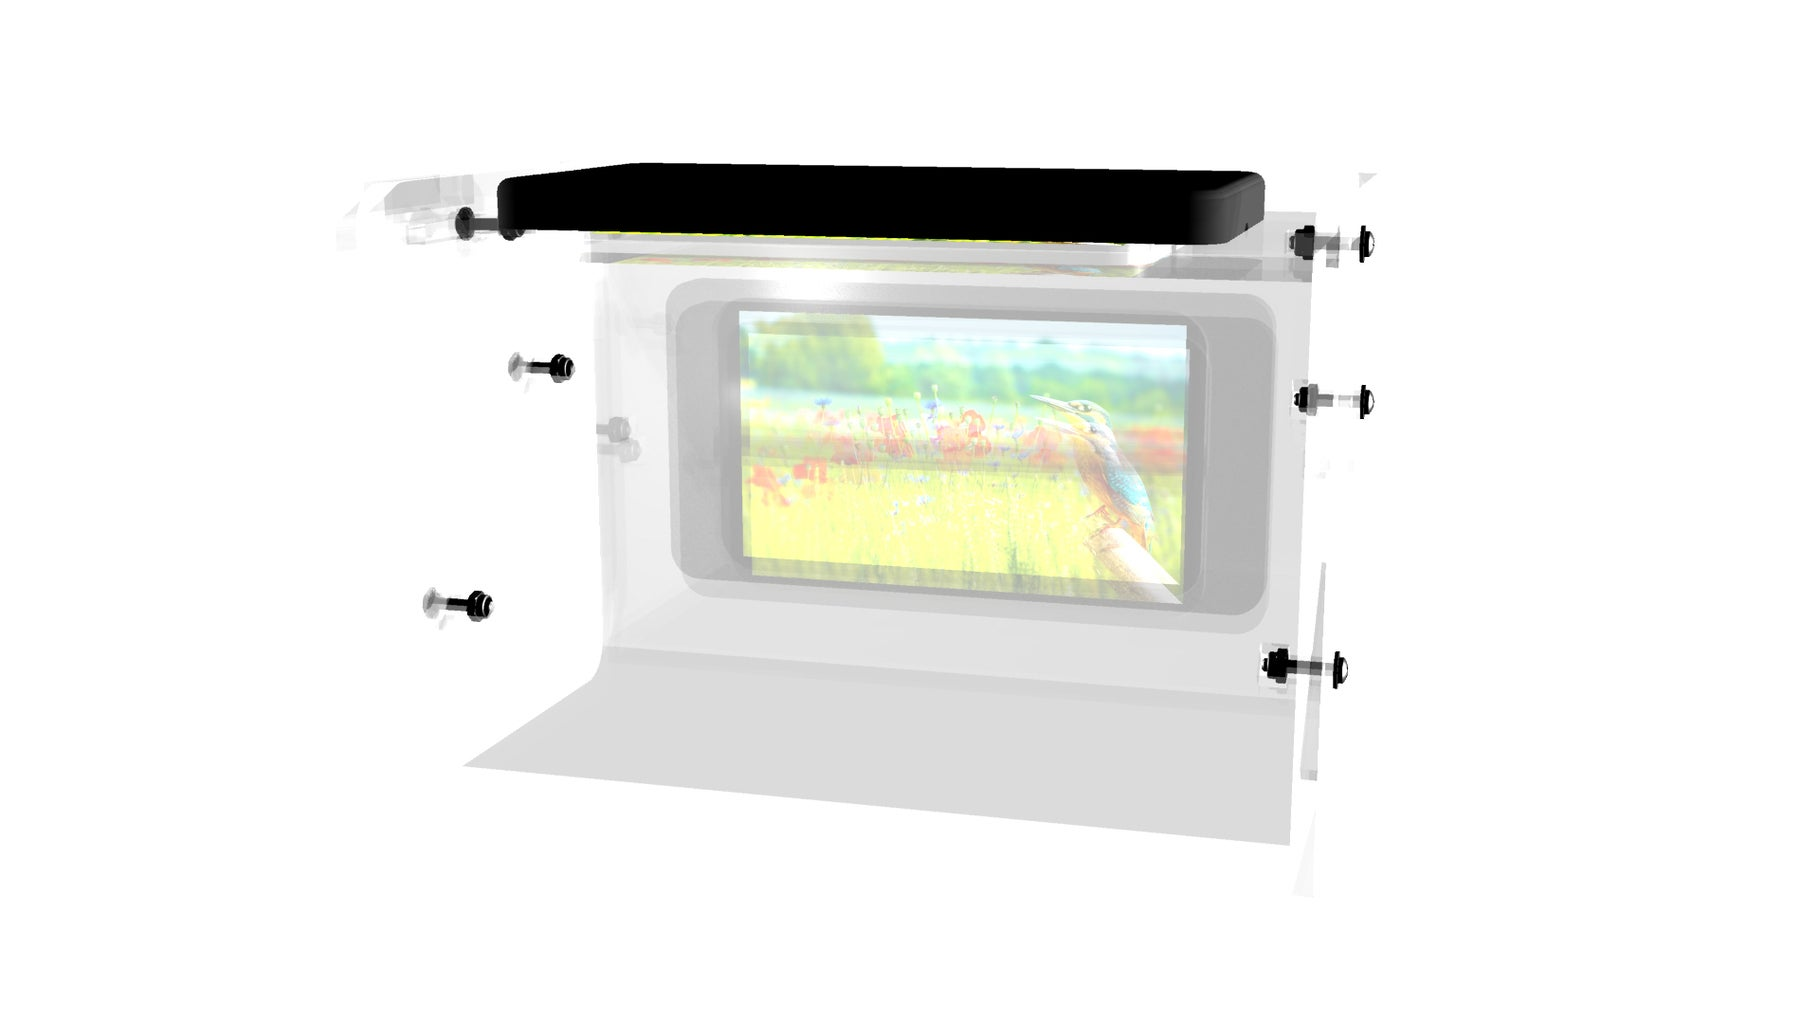 Small 5-in Landscape Holographic Display